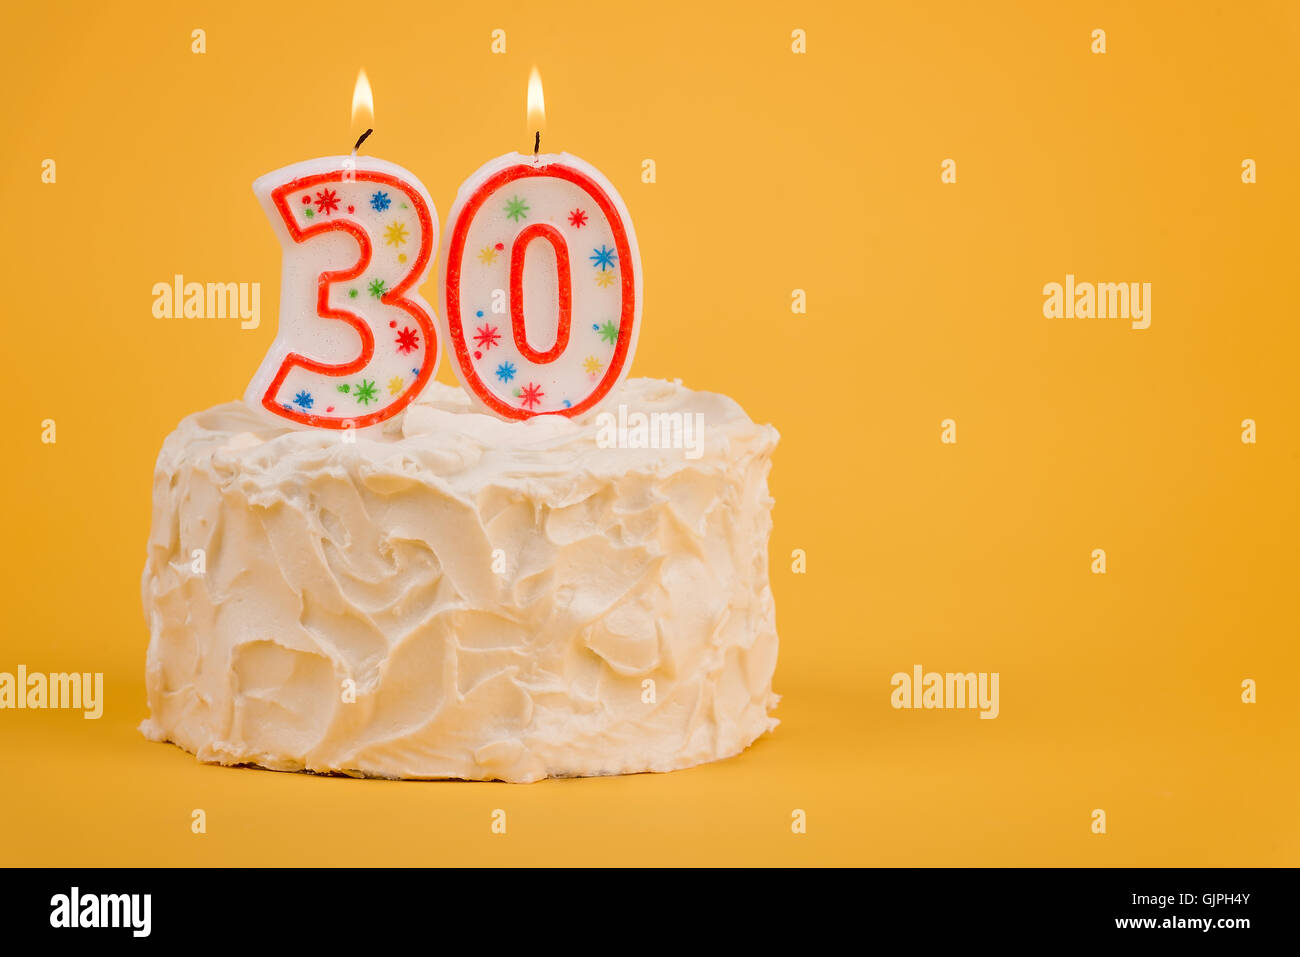 White Frosted Cake With 30 Lit Candles